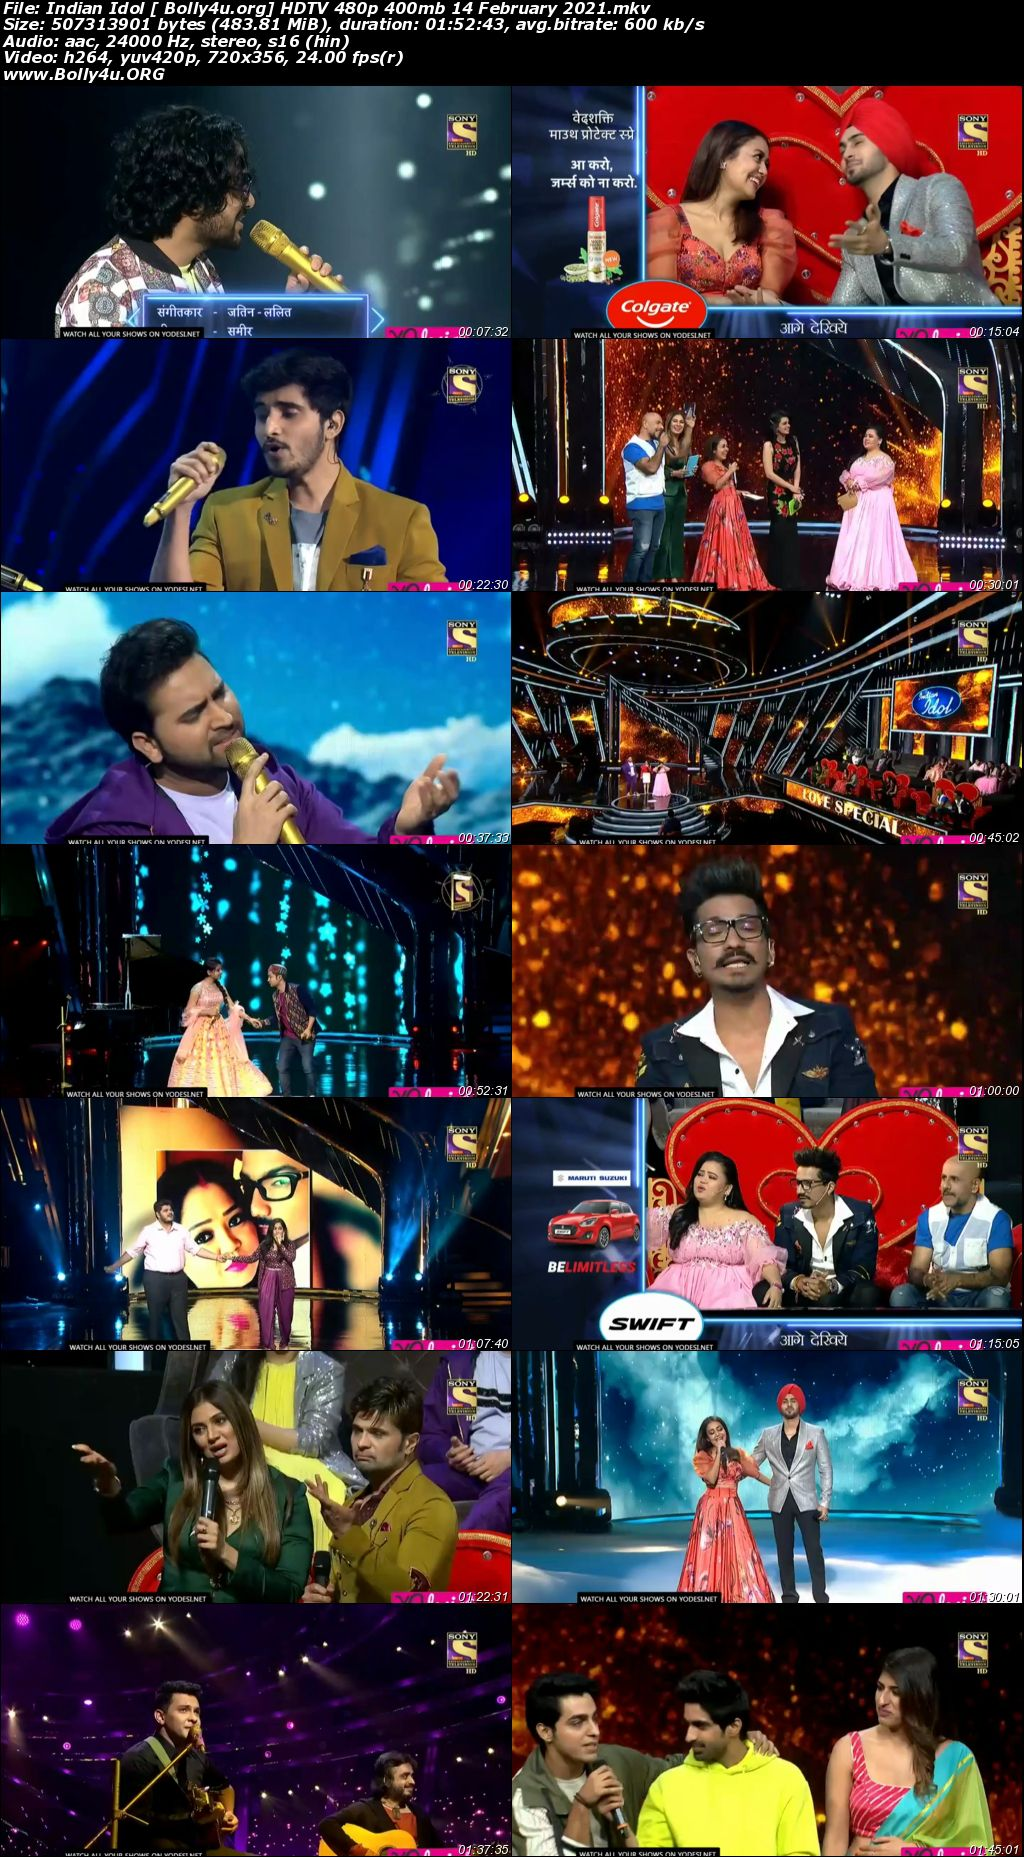 Indian Idol 2021 HDTV 480p 400mb 14 February 2021 Download